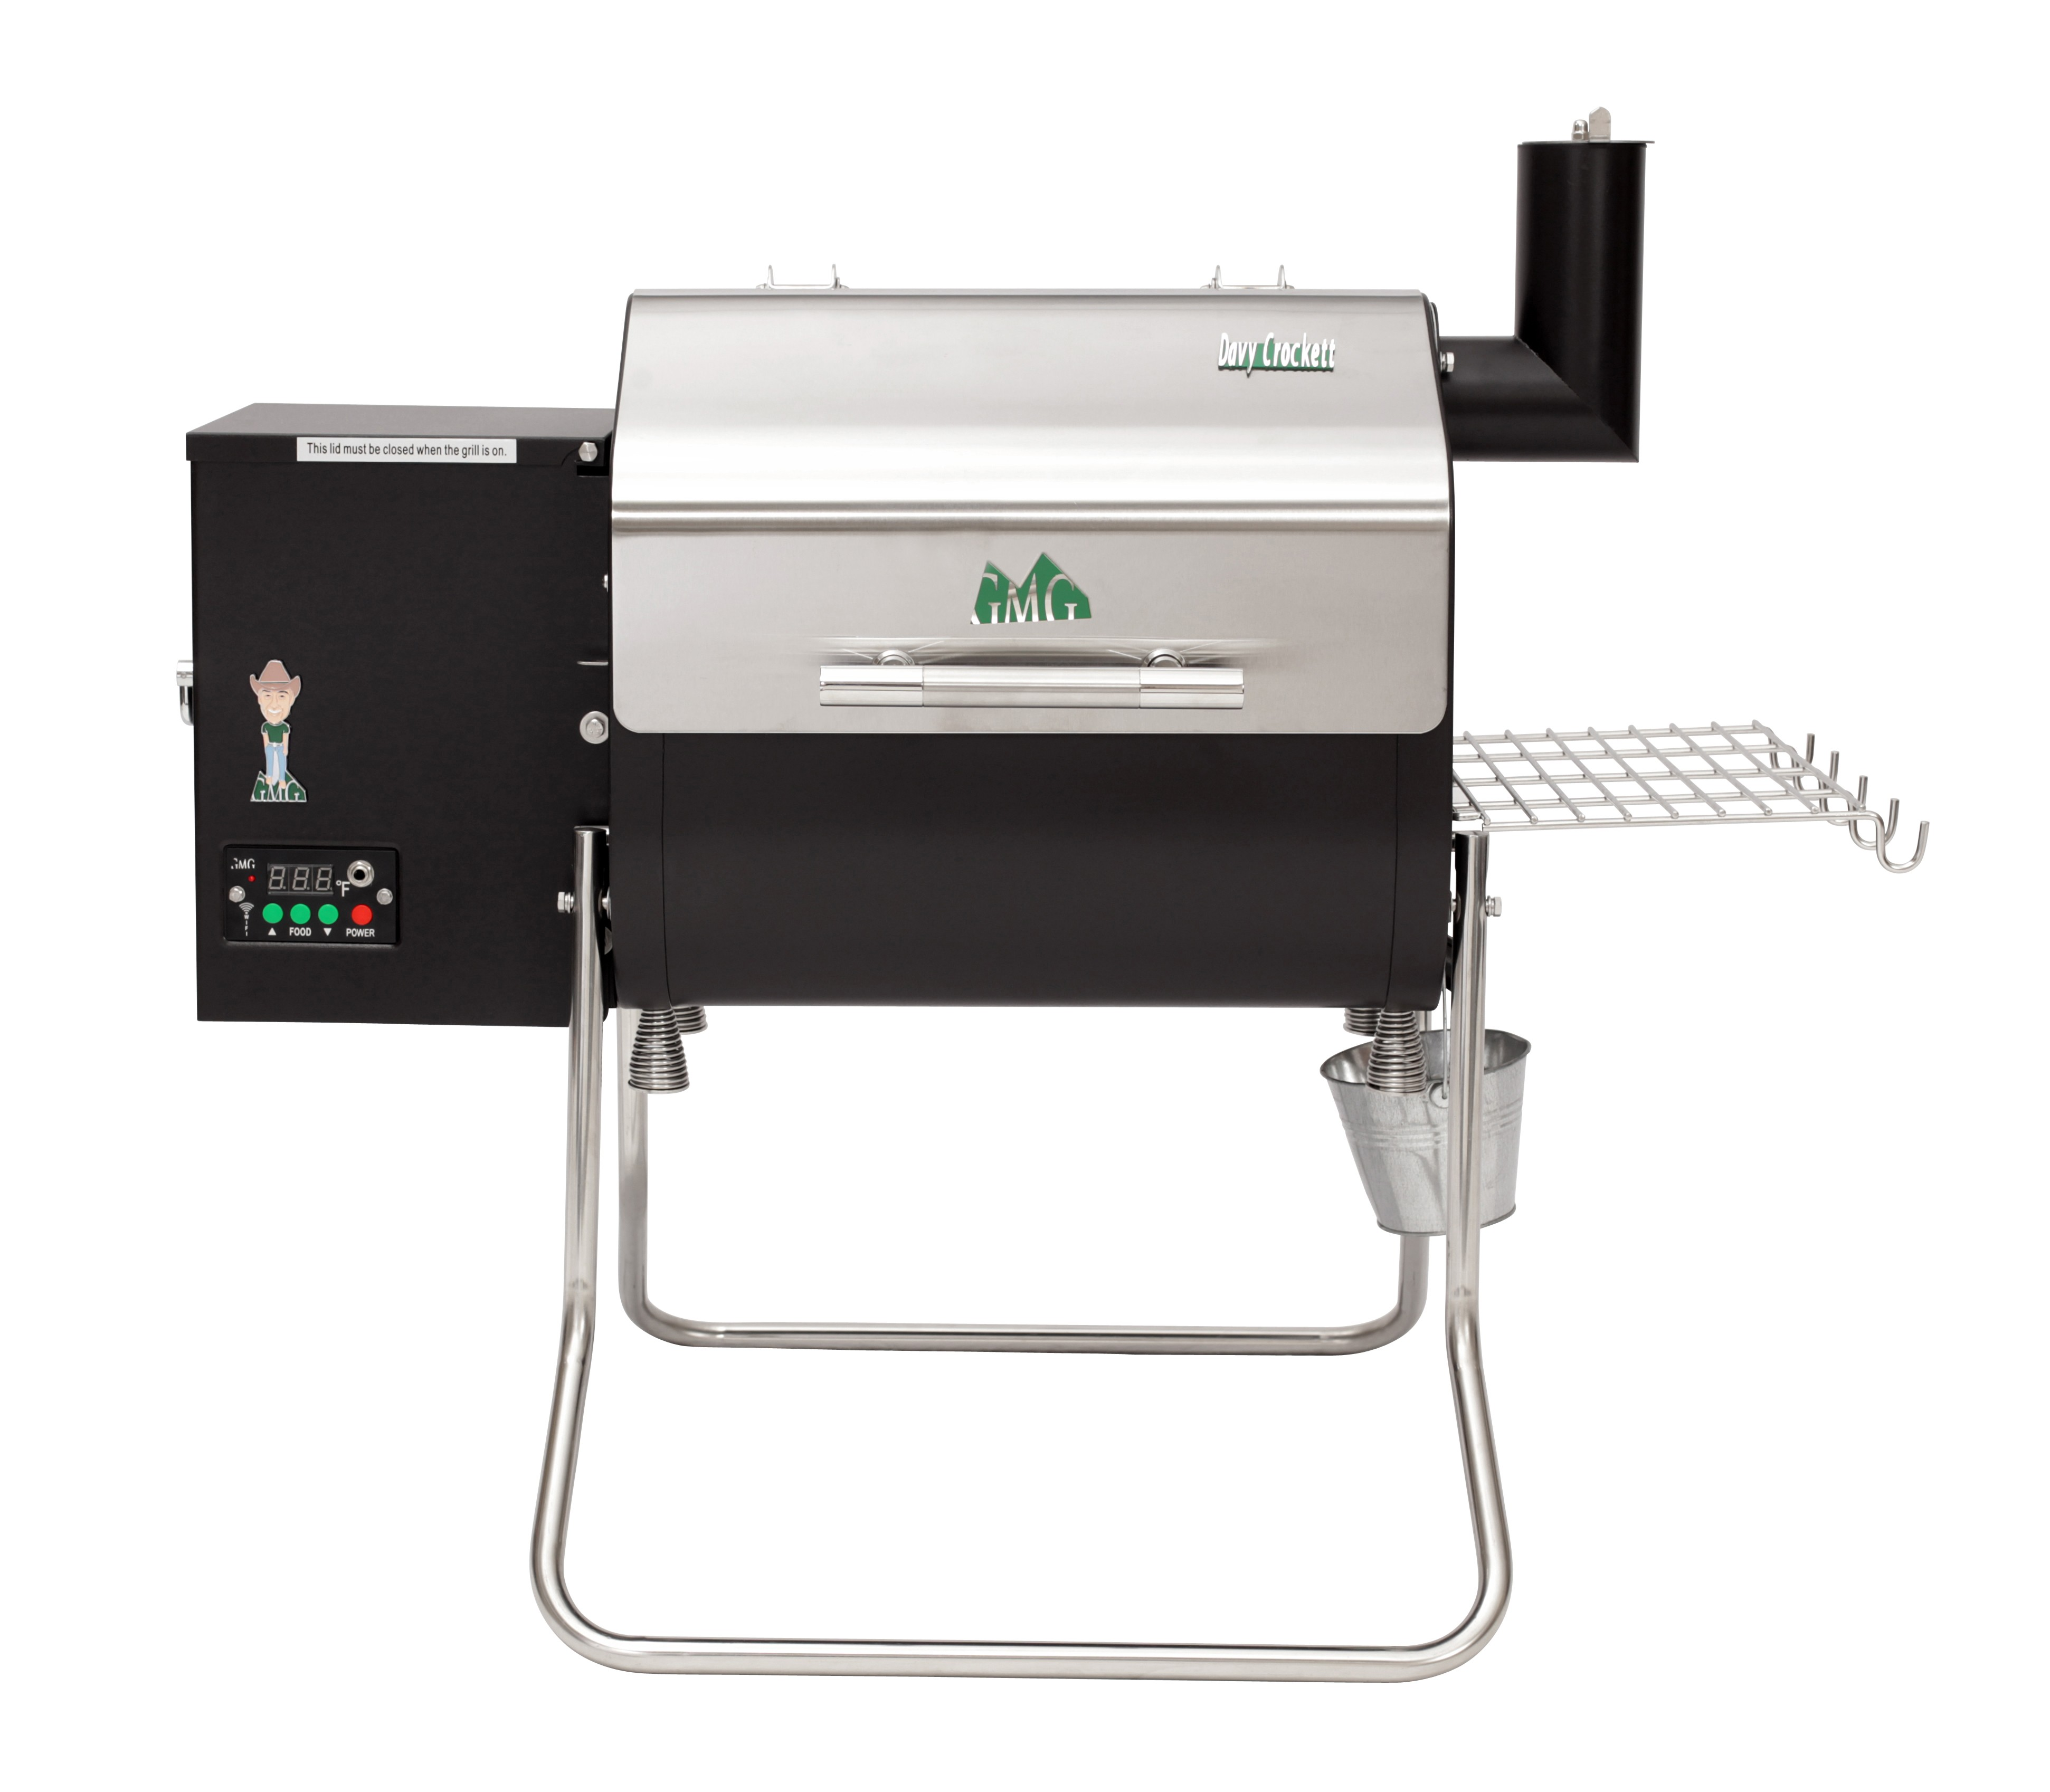 Davy Crockett GM Grill Available at Warming Trends